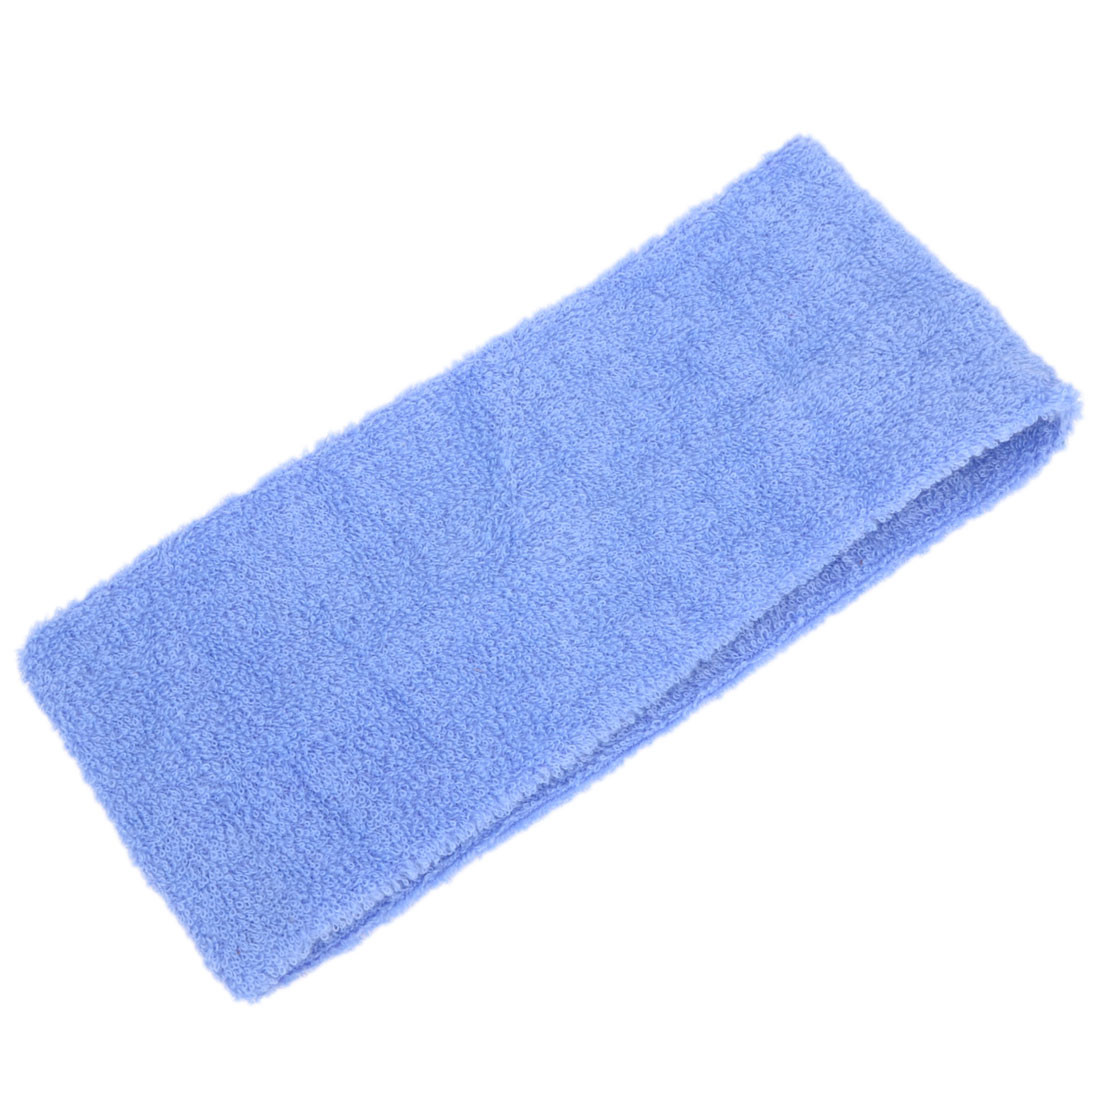 Lady 7cm Width Exercises Sport Yoga Face Washing Stretchy Headband Steel Blue 2 Pcs